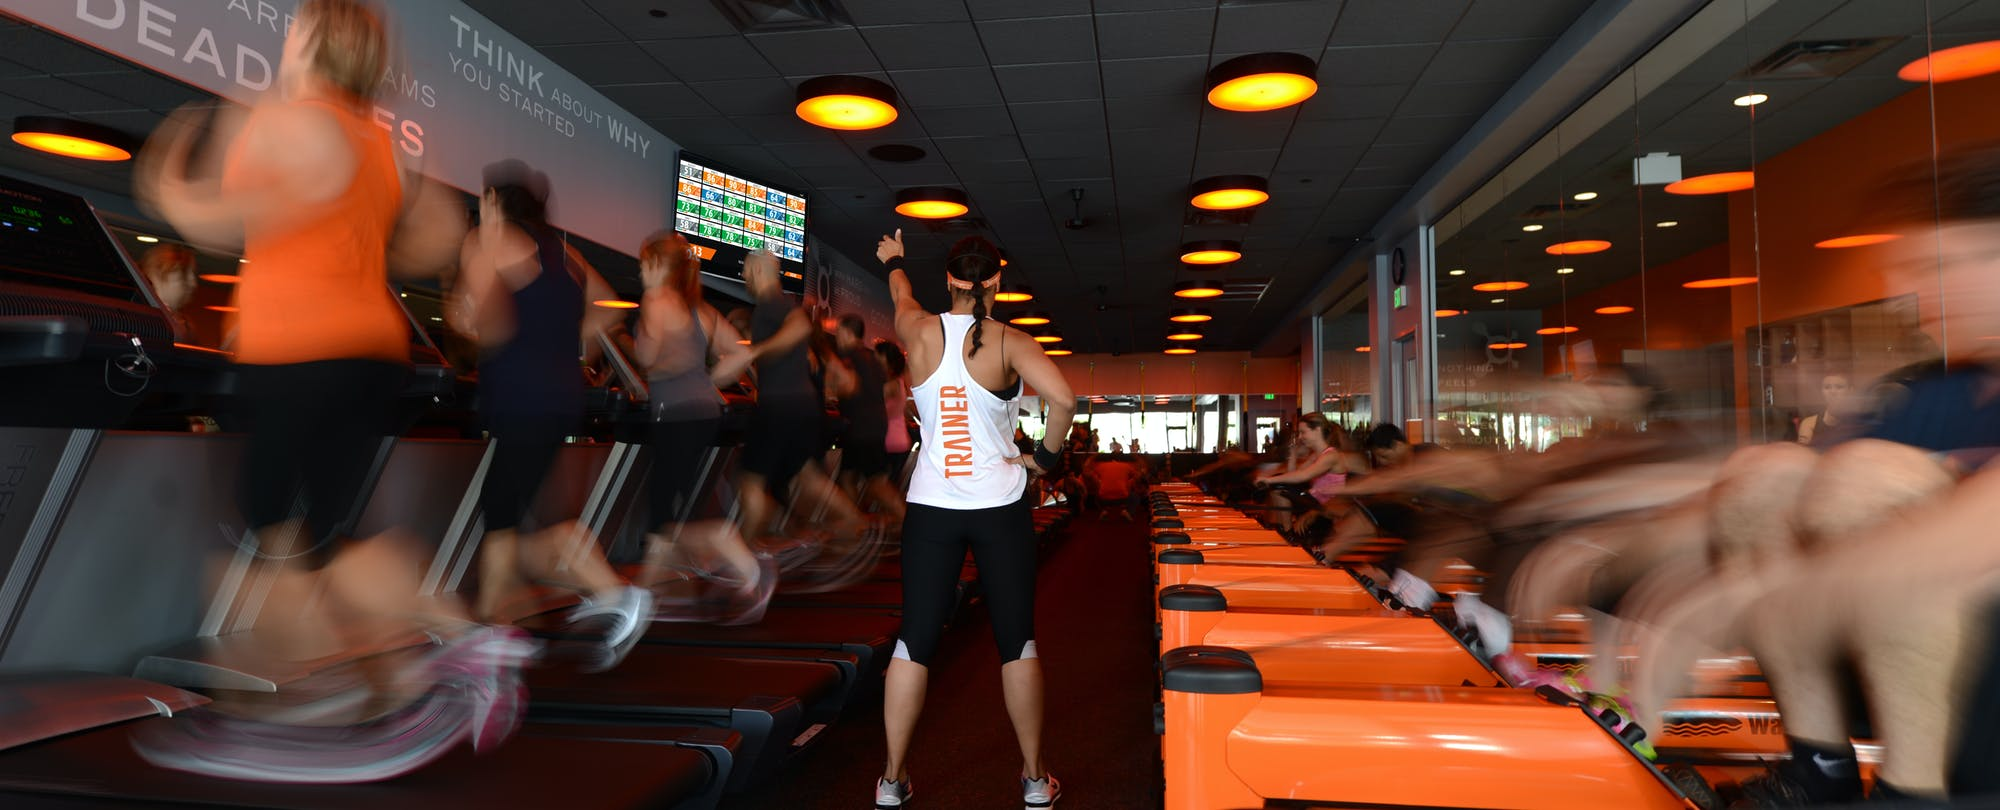 What the Newest Fitness Craze Can Teach Us About Personalized Learning